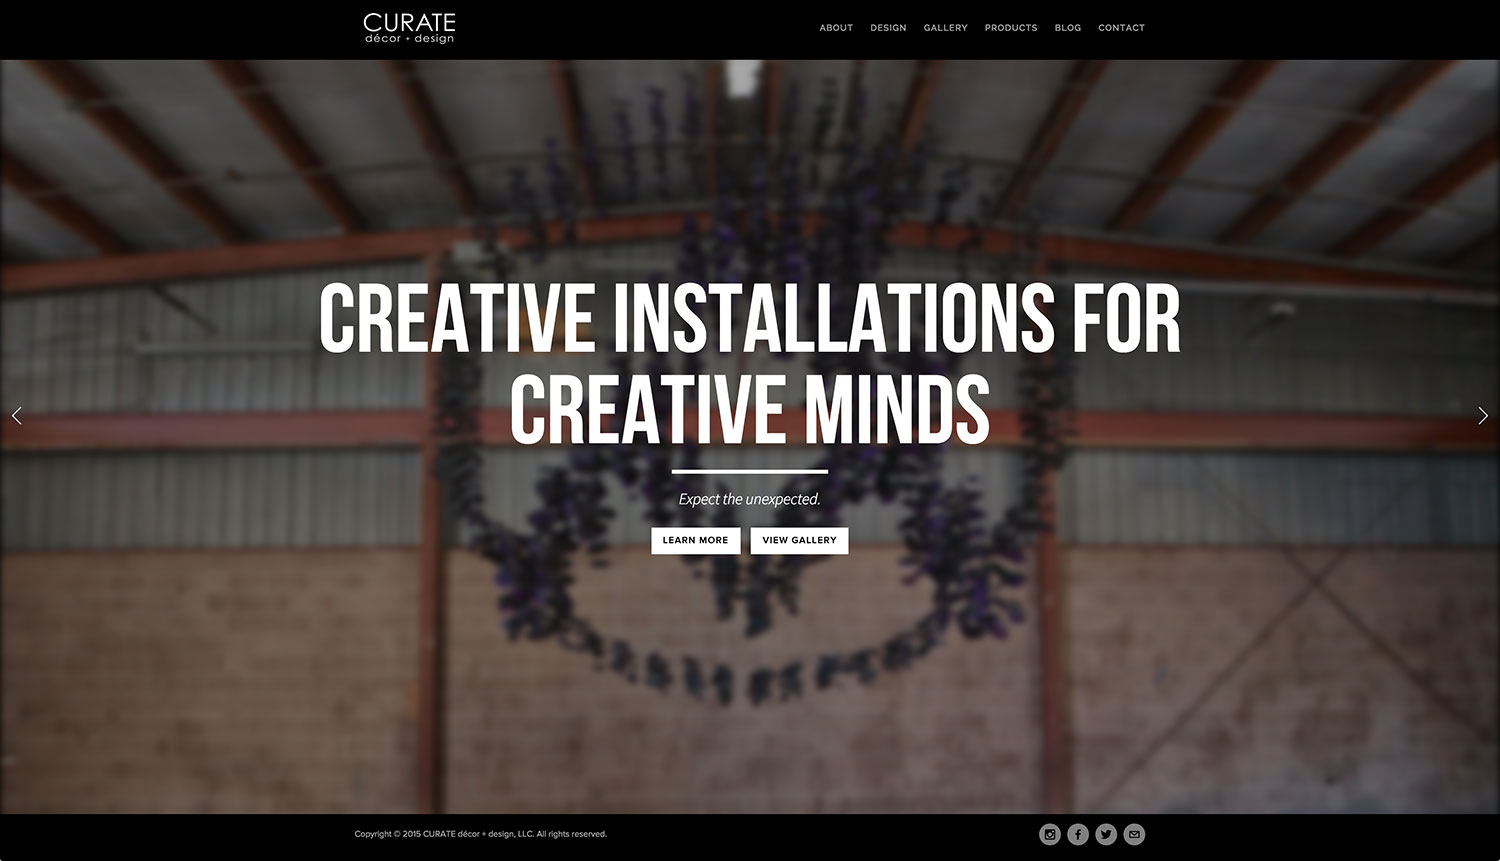 Curate Decor & Design